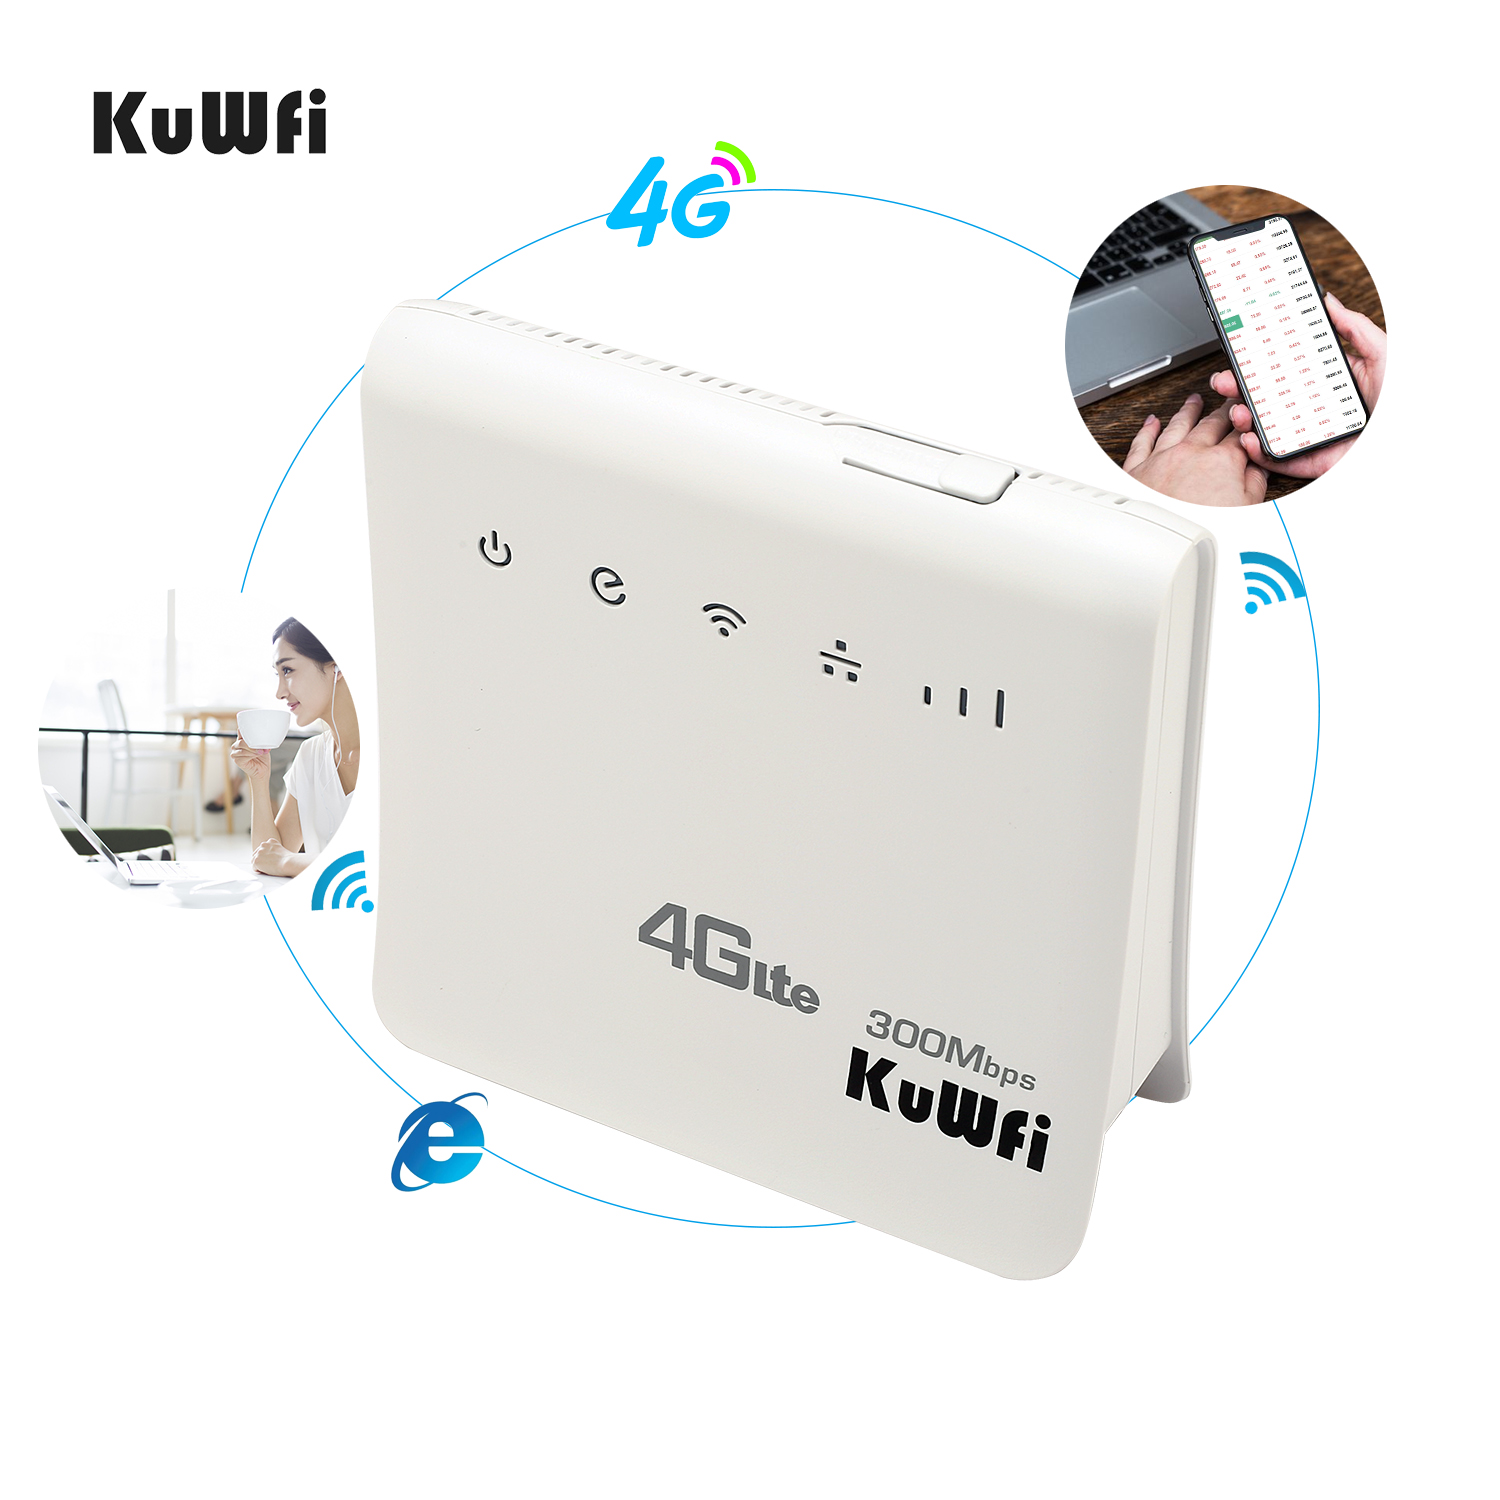 Unlocked 300Mbps Wifi Routers or 4G LTE CPE Mobile Router with LAN Port Support and SIM card 21